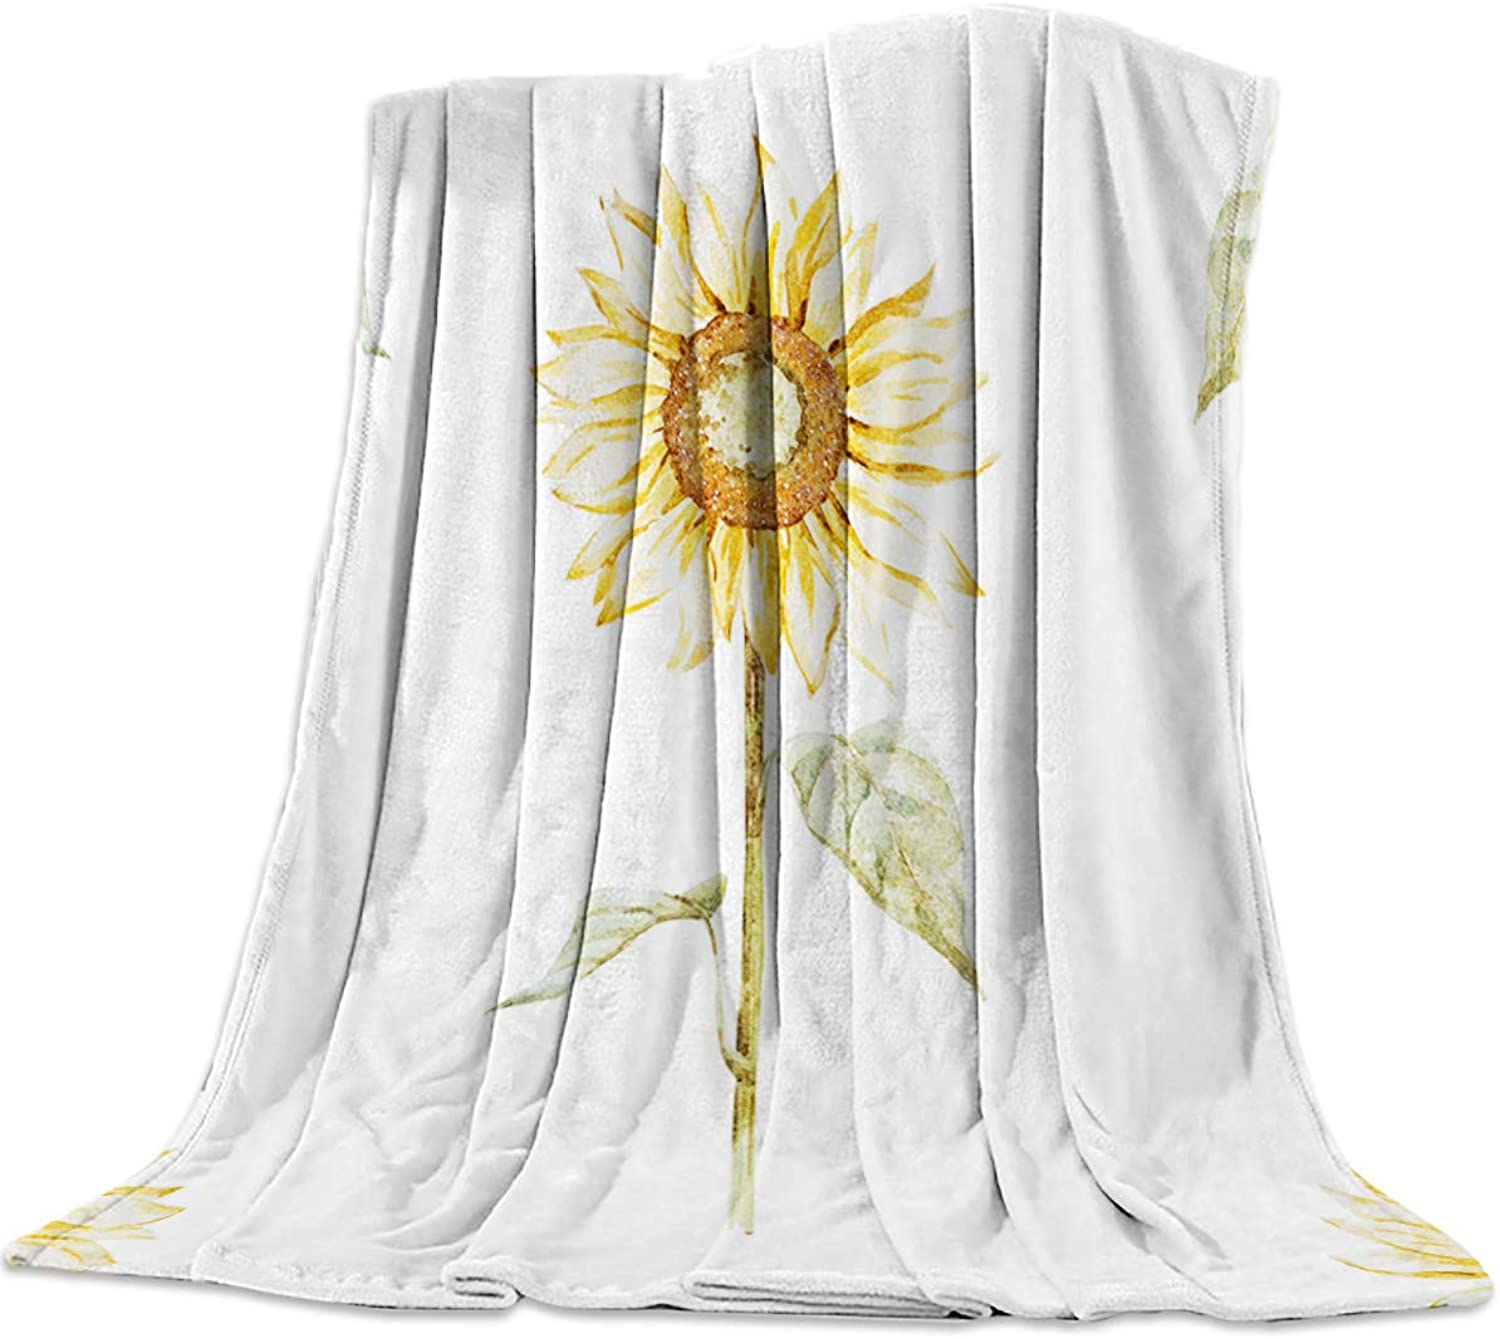 T&H Home Fuzzy Weighted Blanket Sunflower Blankets, Watercolor Floral Pattern Warm Flannel Throw Blanket for Baby Girls Boys Adult Home Office Sofa Chair Cars 40 x50